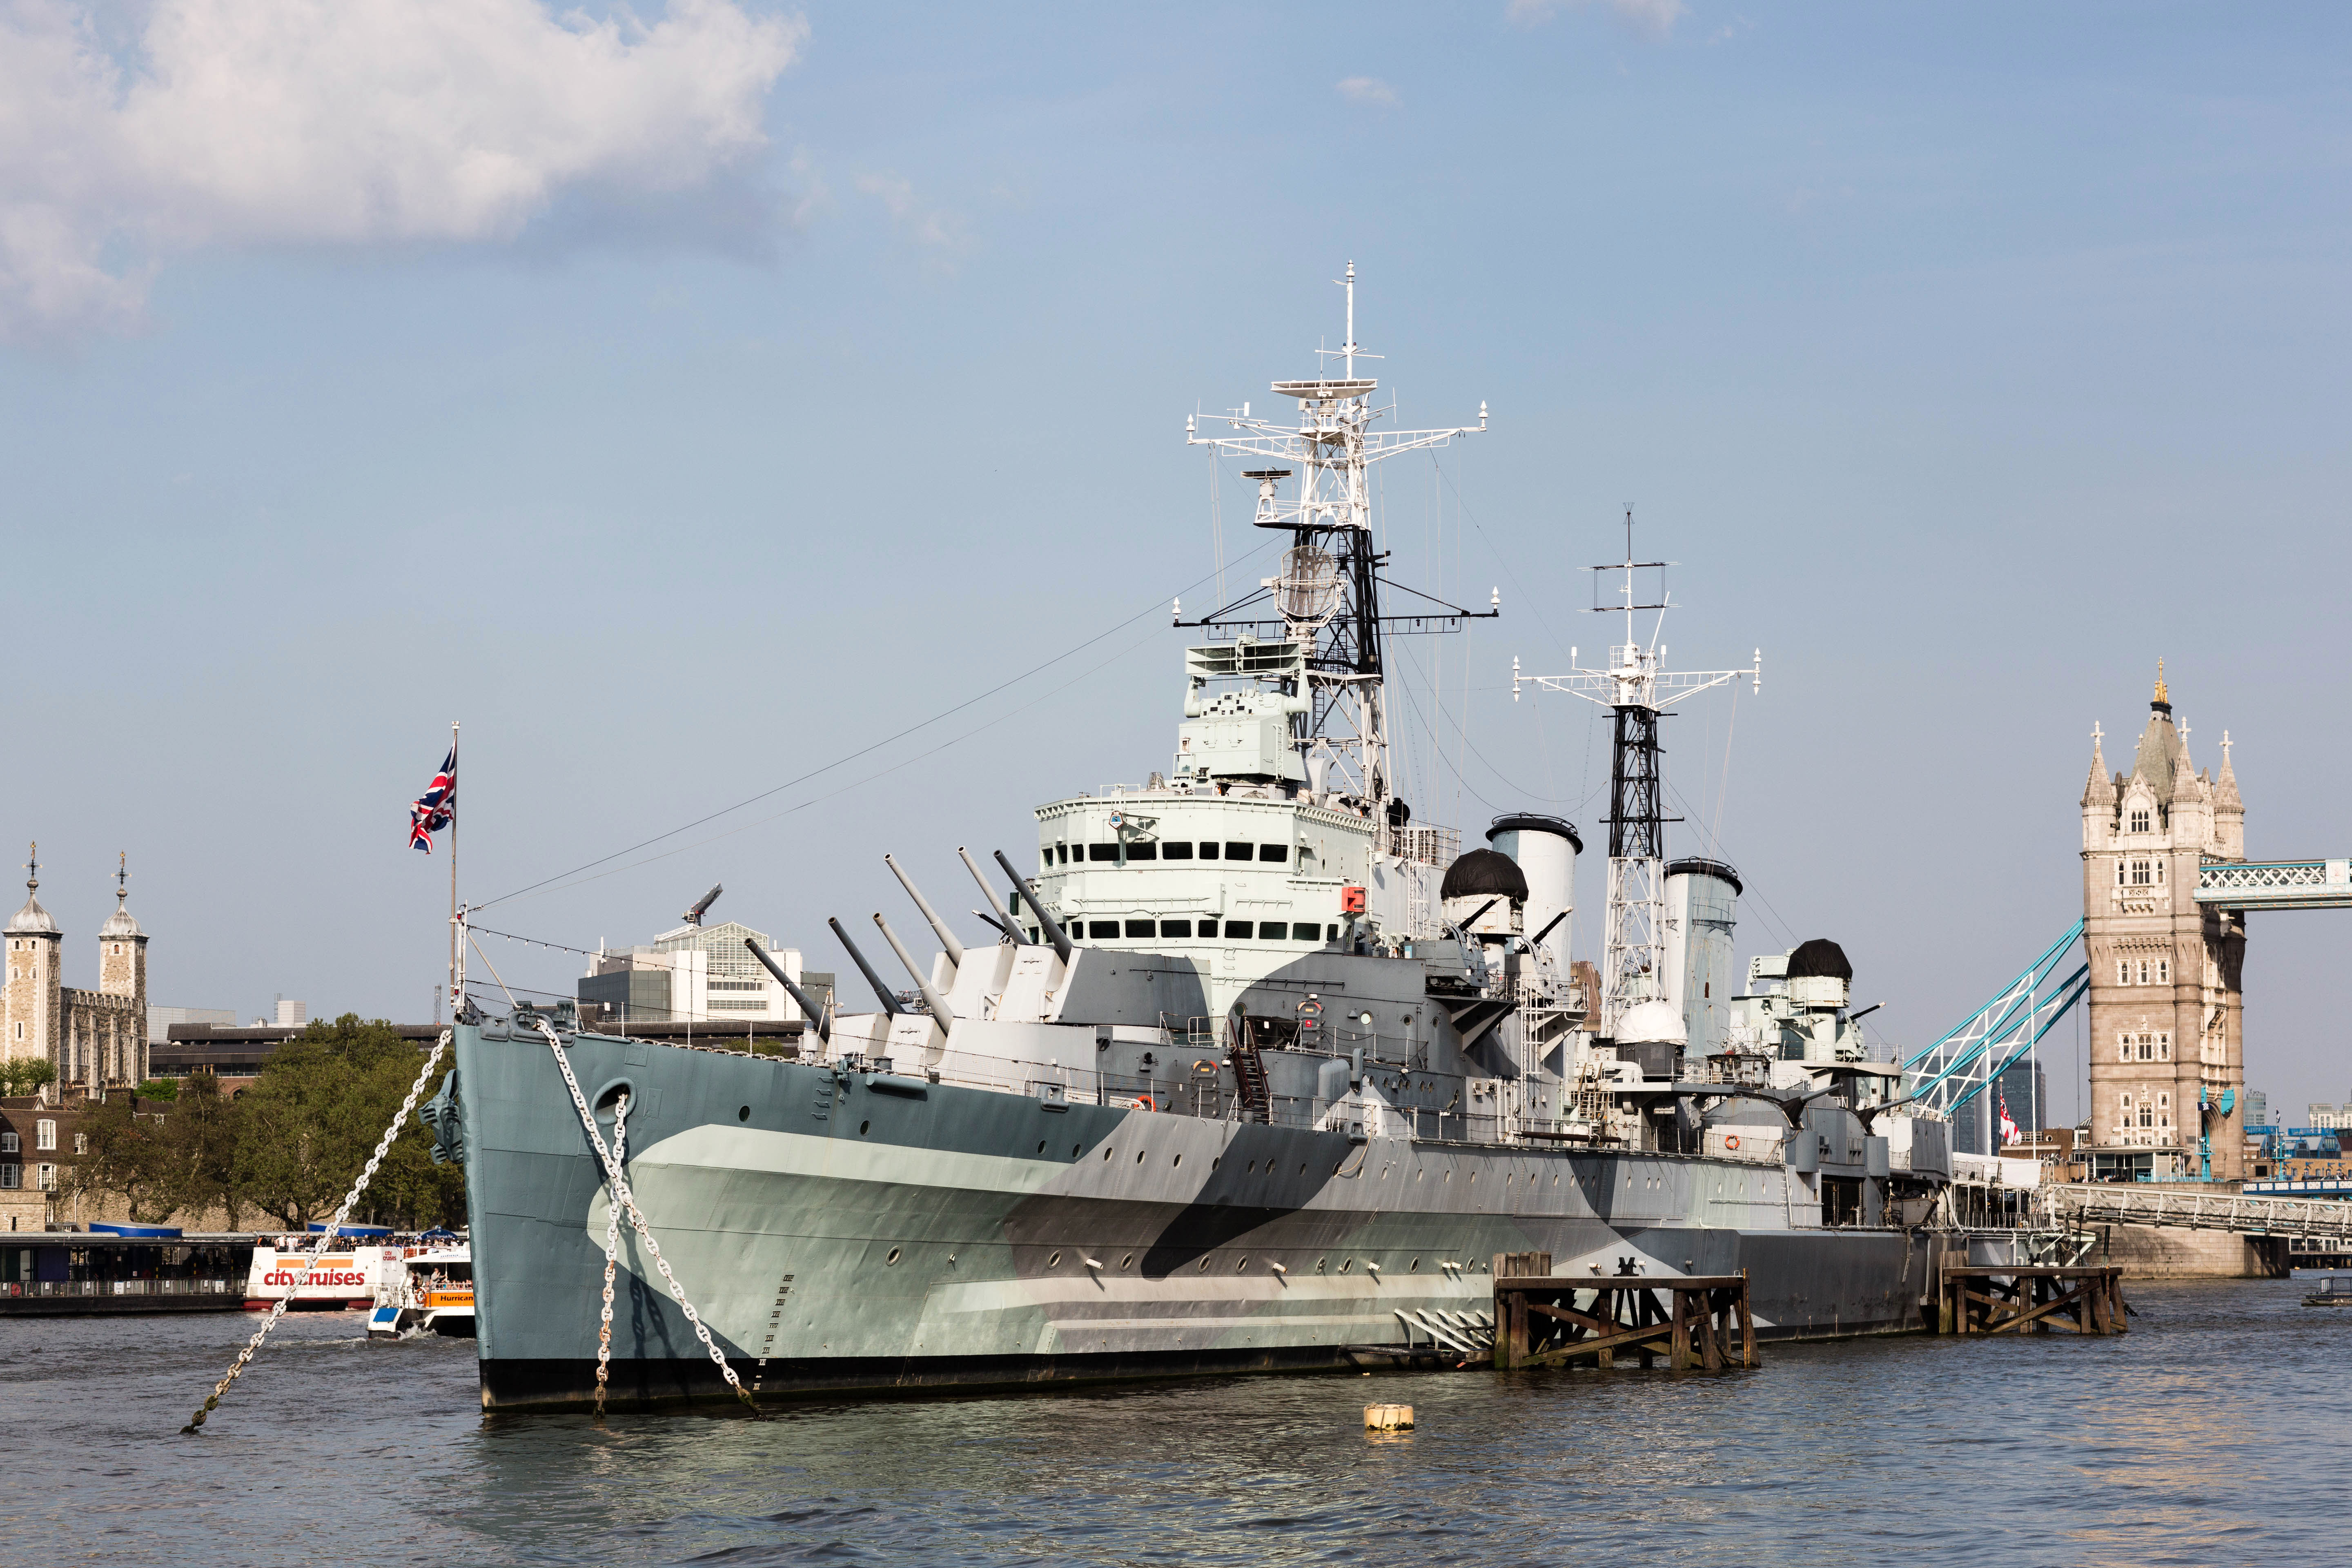 Mission: Engagement – HMS Belfast, London